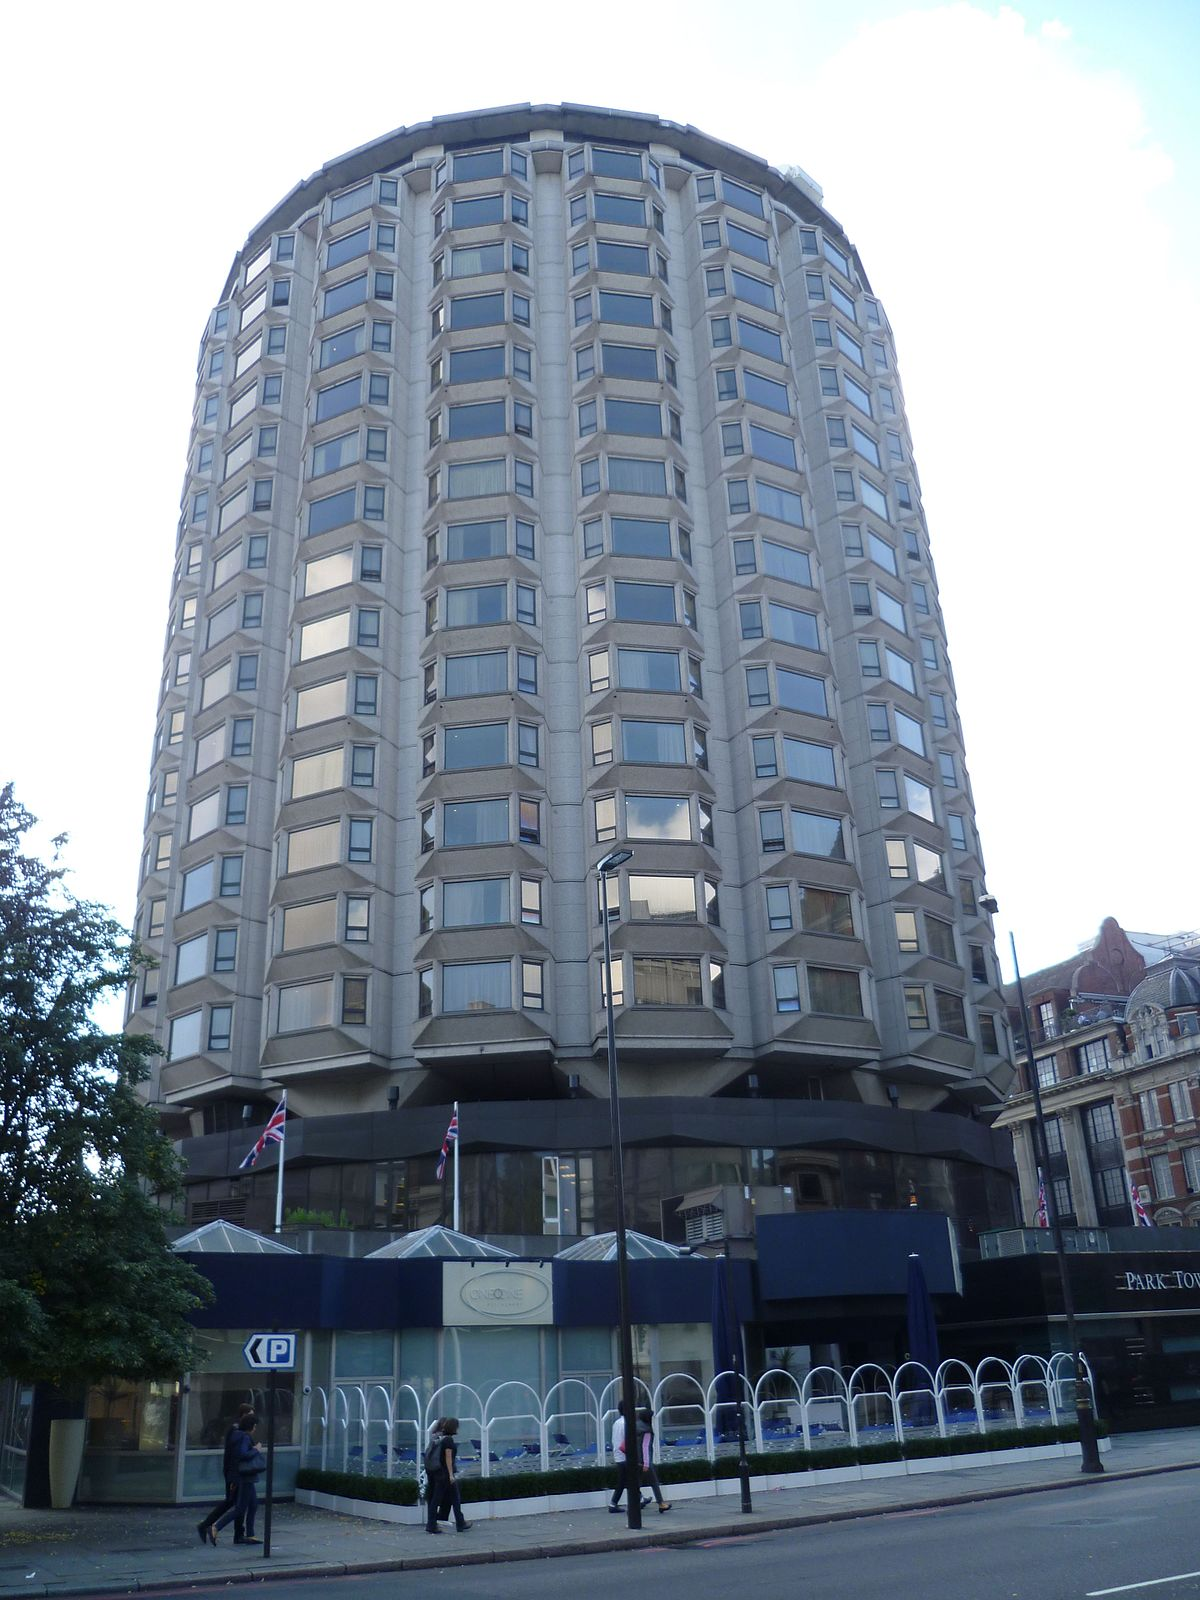 The park tower knightsbridge hotel wikipedia for The knightsbridge